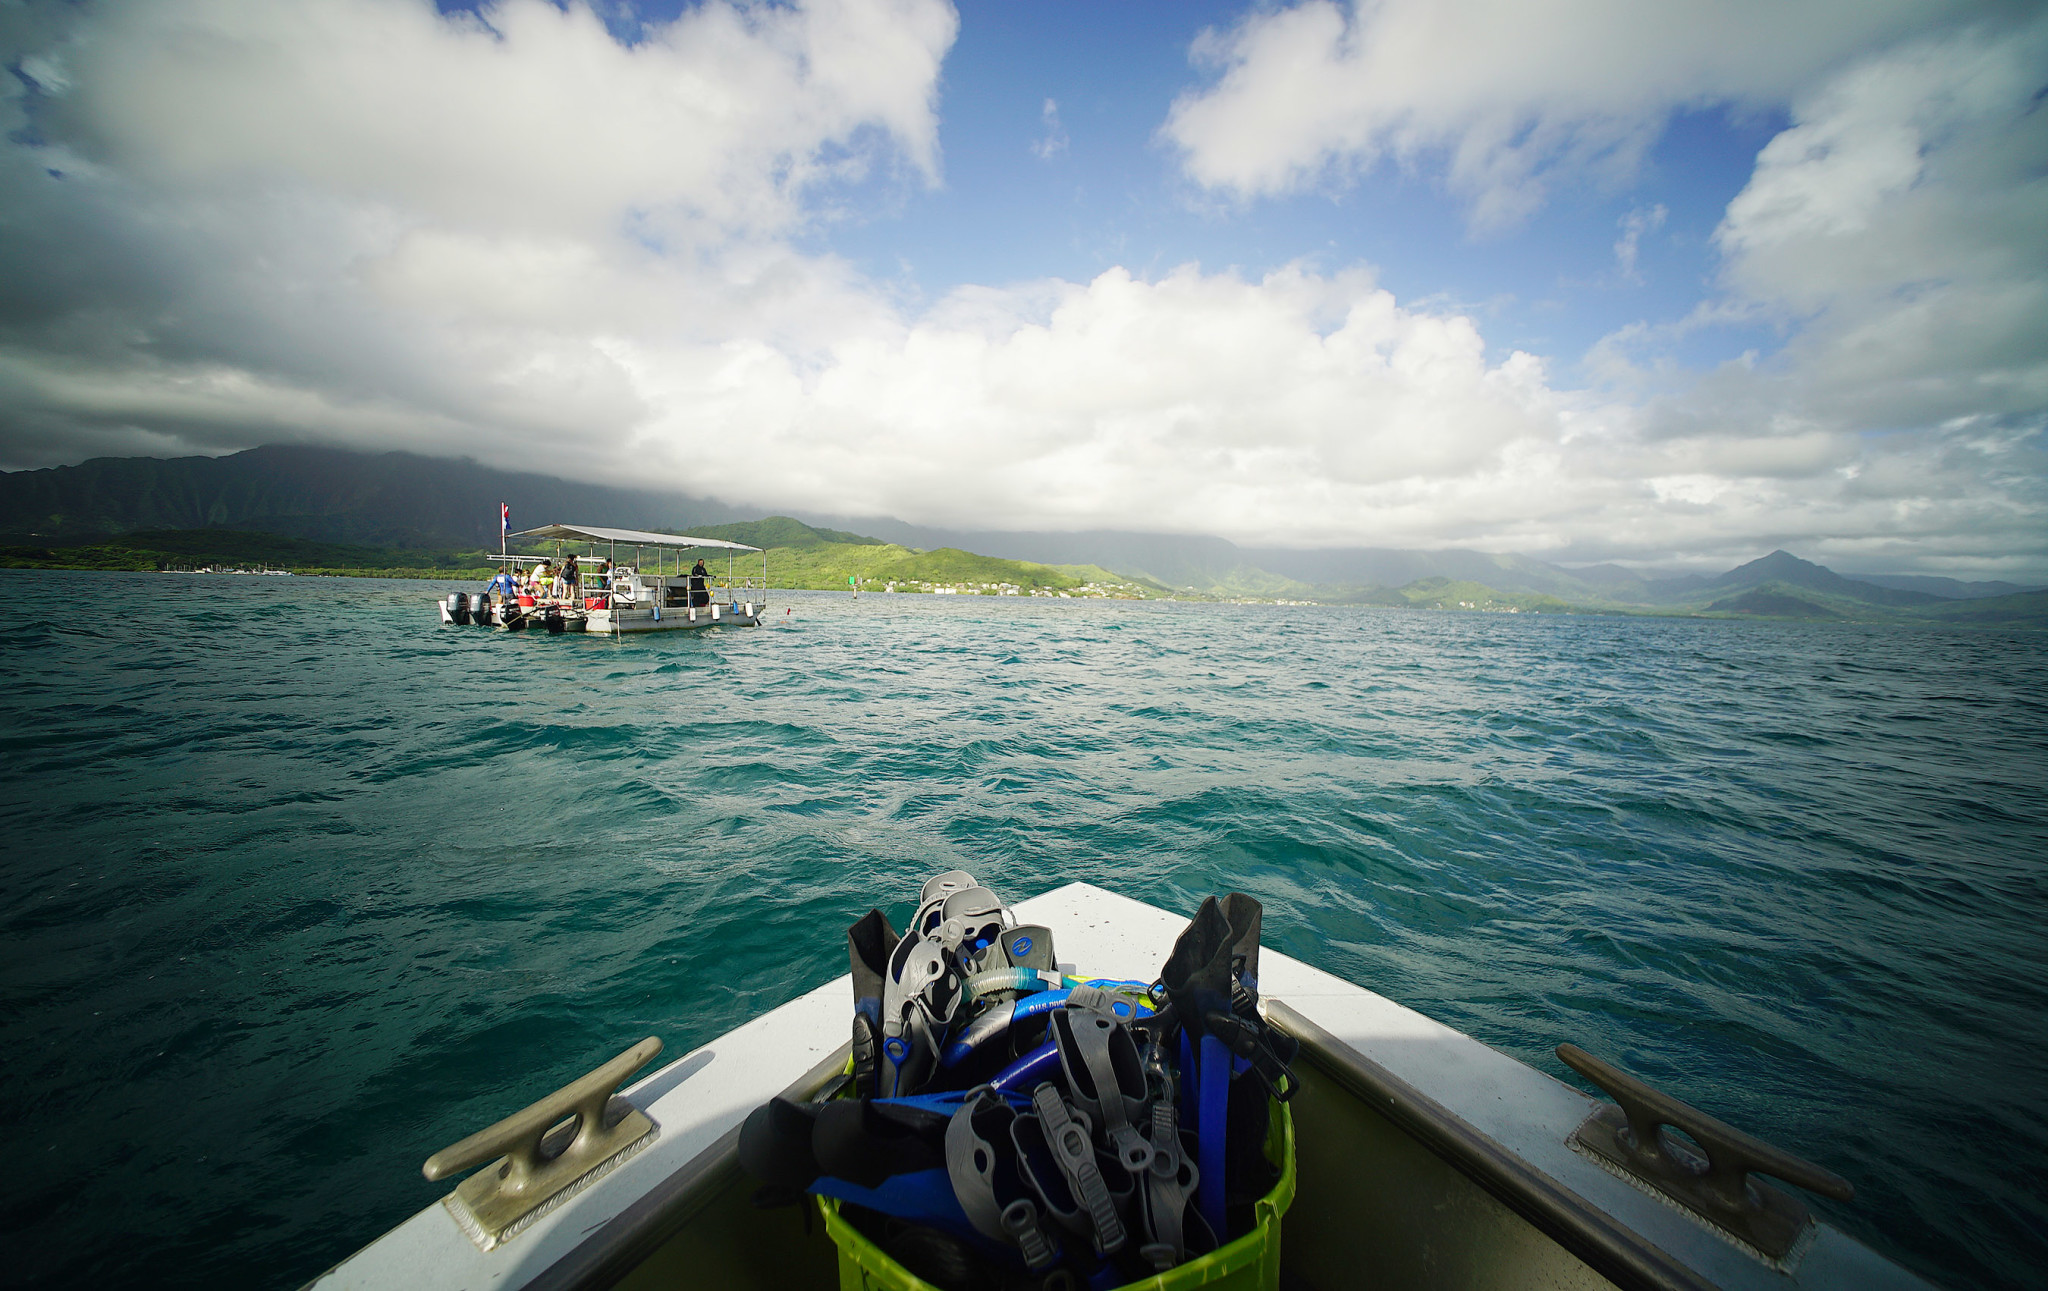 <p>The &#8220;Super Sucker Barge&#8221; uses two large hoses to operate like a giant vacuum that slurps up invasive algae and seaweed from the coral. The algae is then turned into compost that can be used on local farms located in Windward Oahu. Officials don&#8217;t want to transport the algae to farms over the mountains for fear that it might spread to other parts of the island.</p>